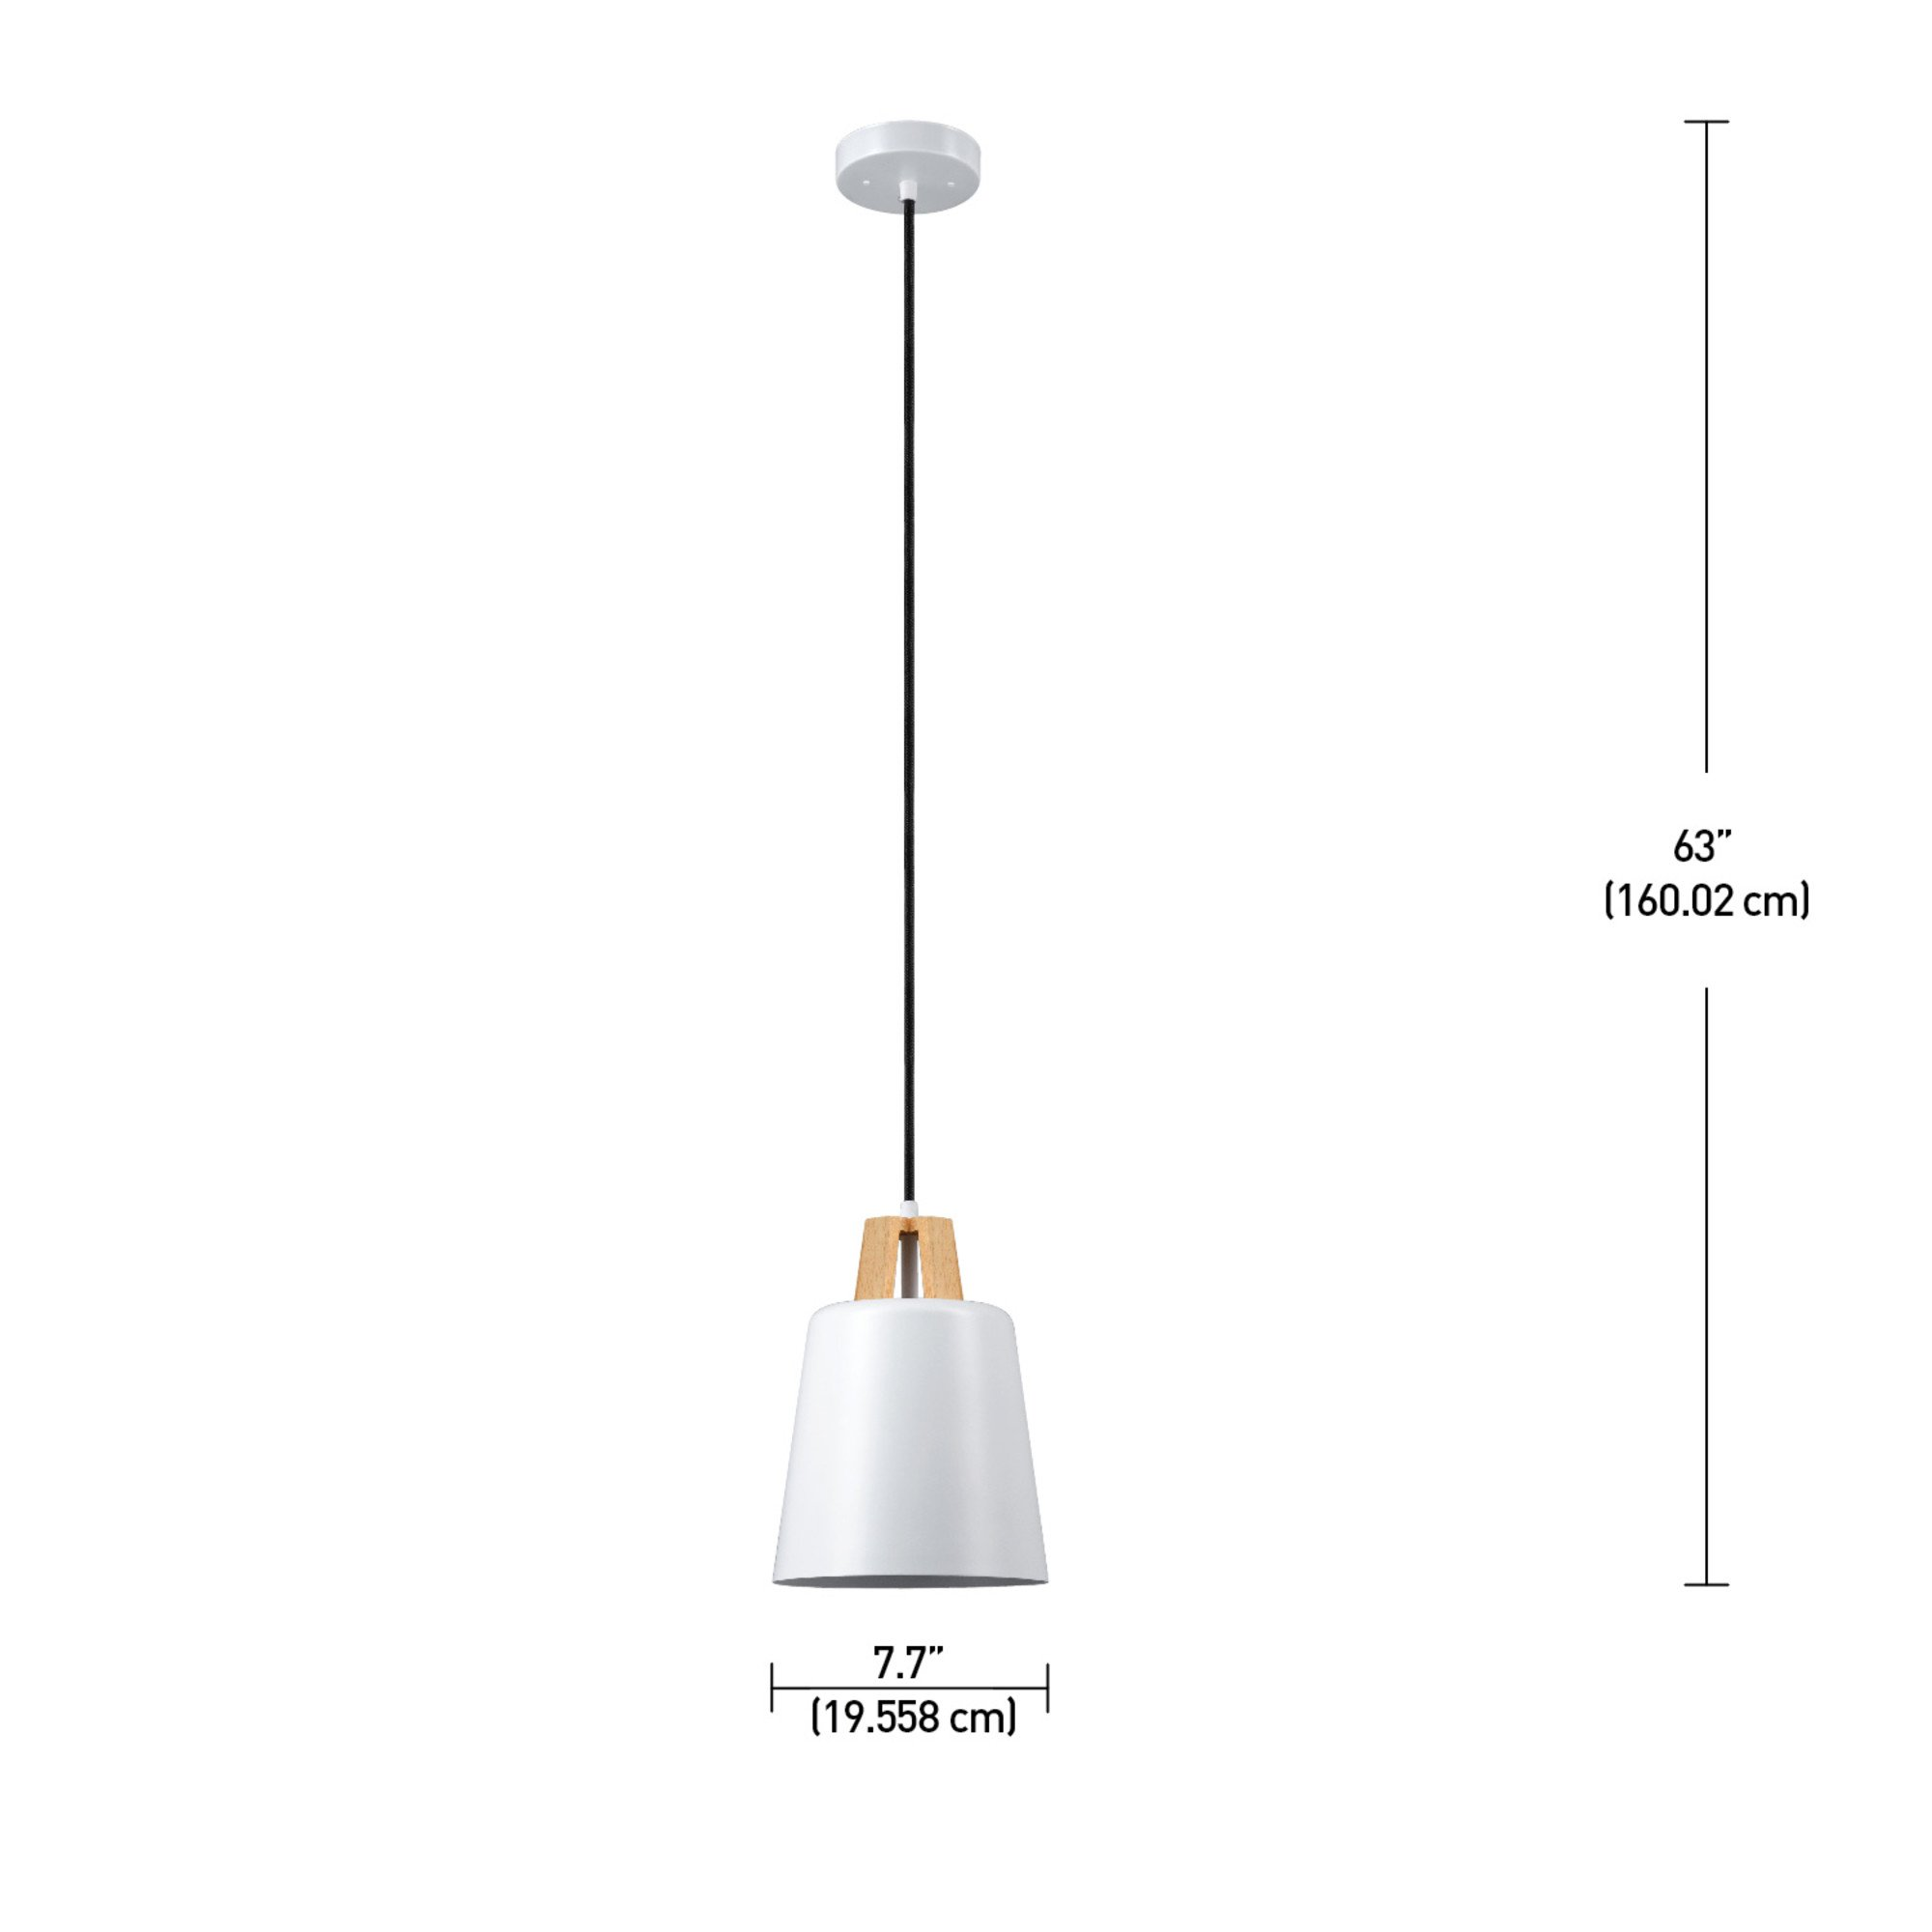 Globe Electric Jeor 1-Light Pendant, White Finish, Faux Wood Accent, 65431 by Globe Electric (Image #4)